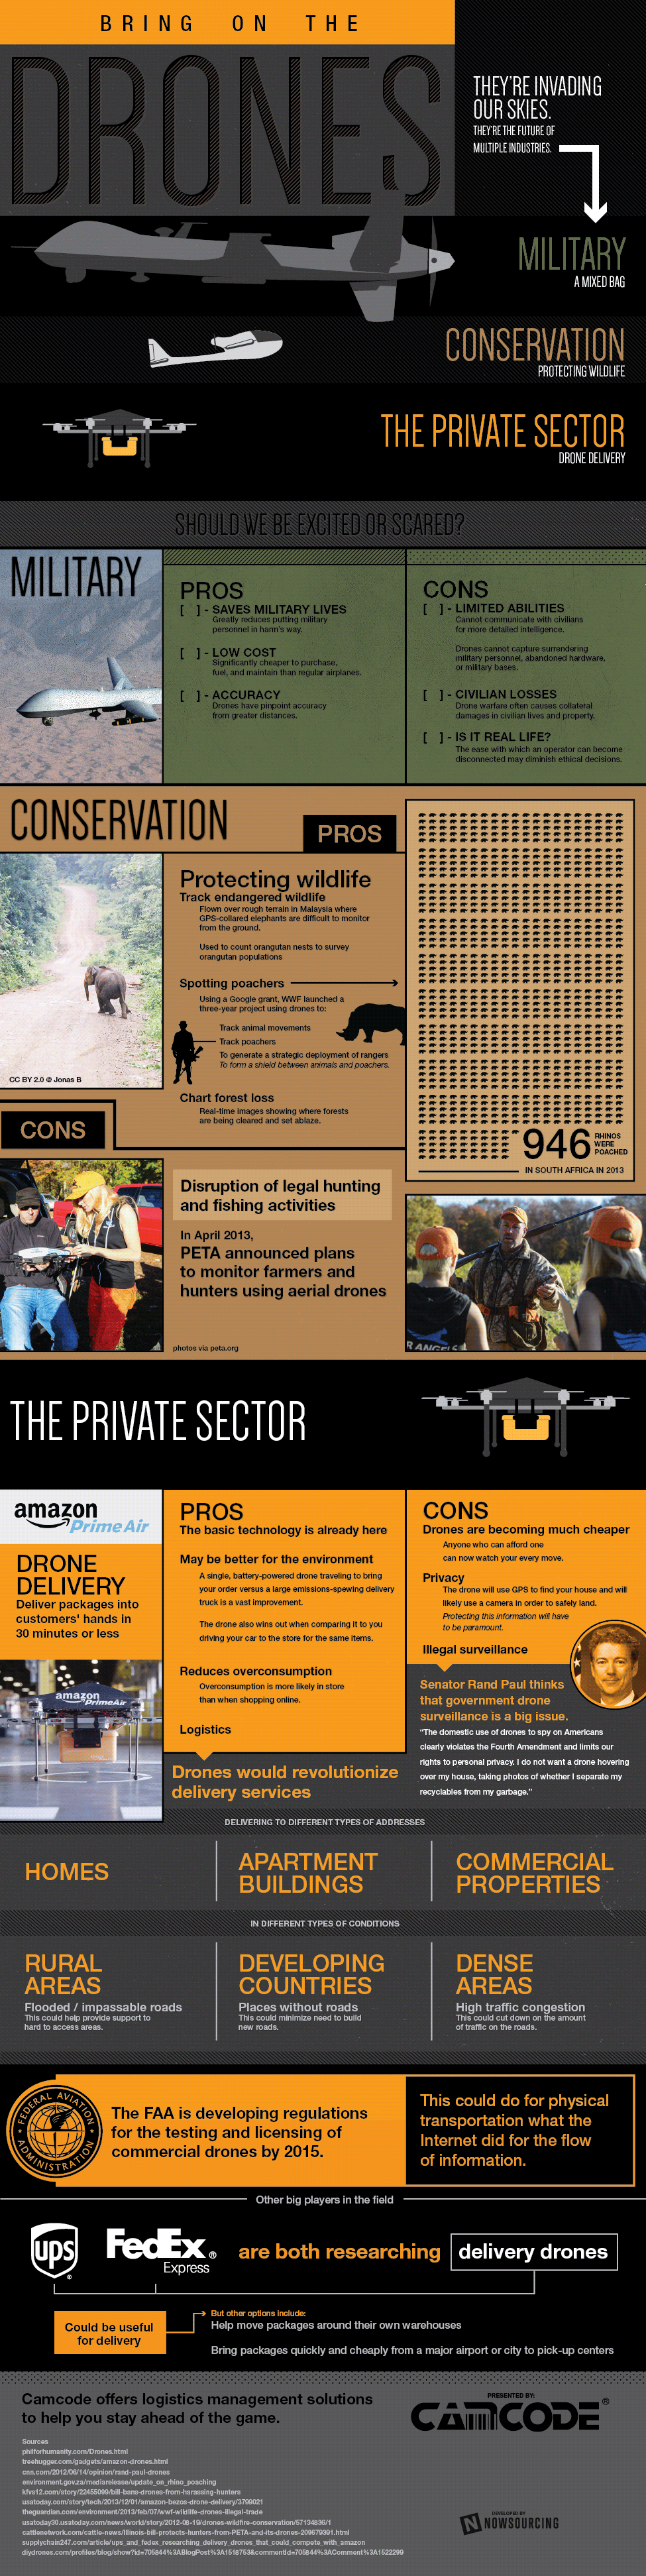 Bring on the Drones [Infographic]